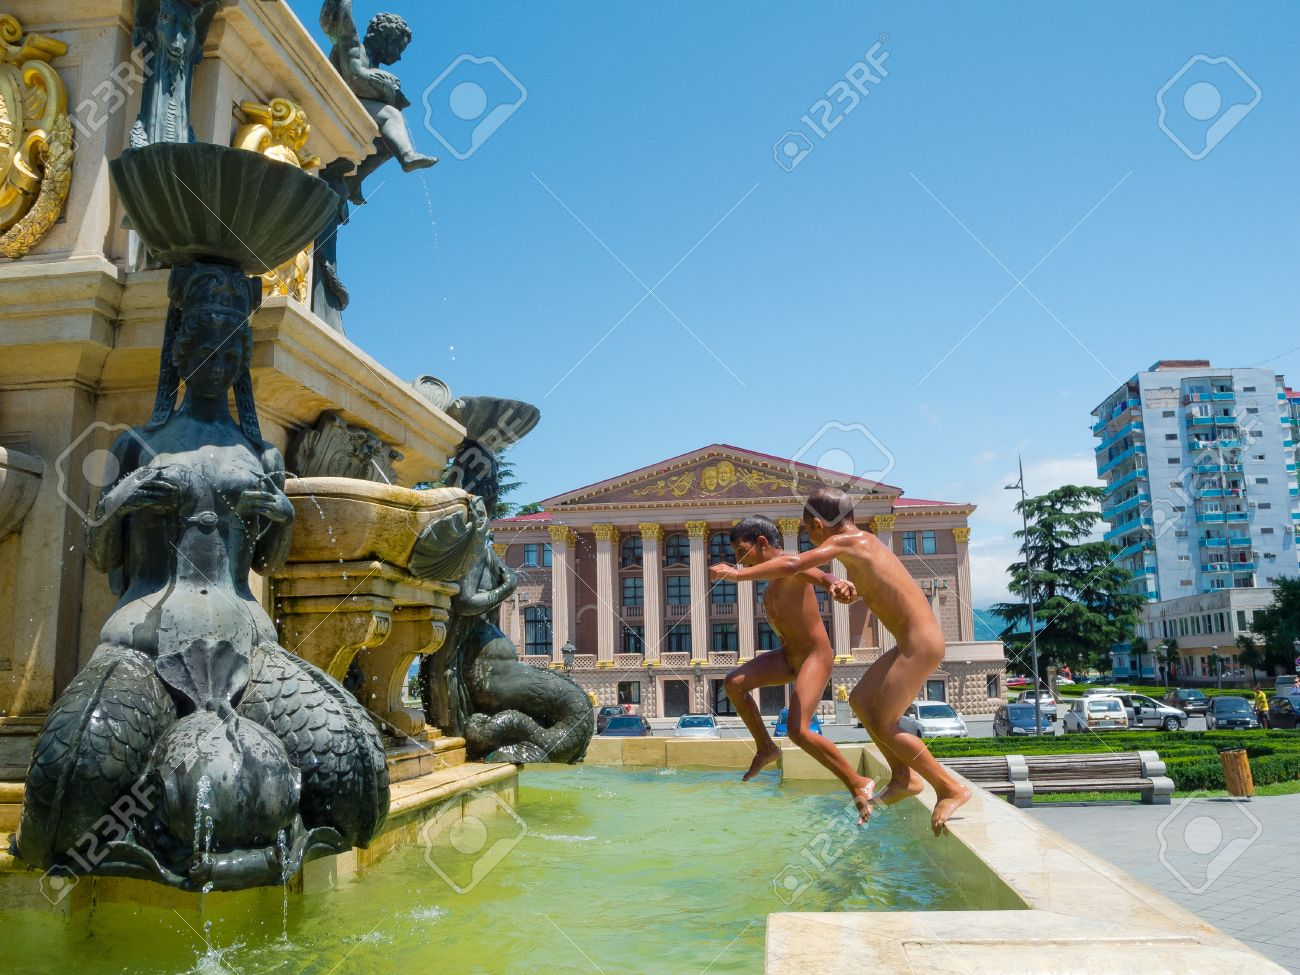 Naked in the fountain